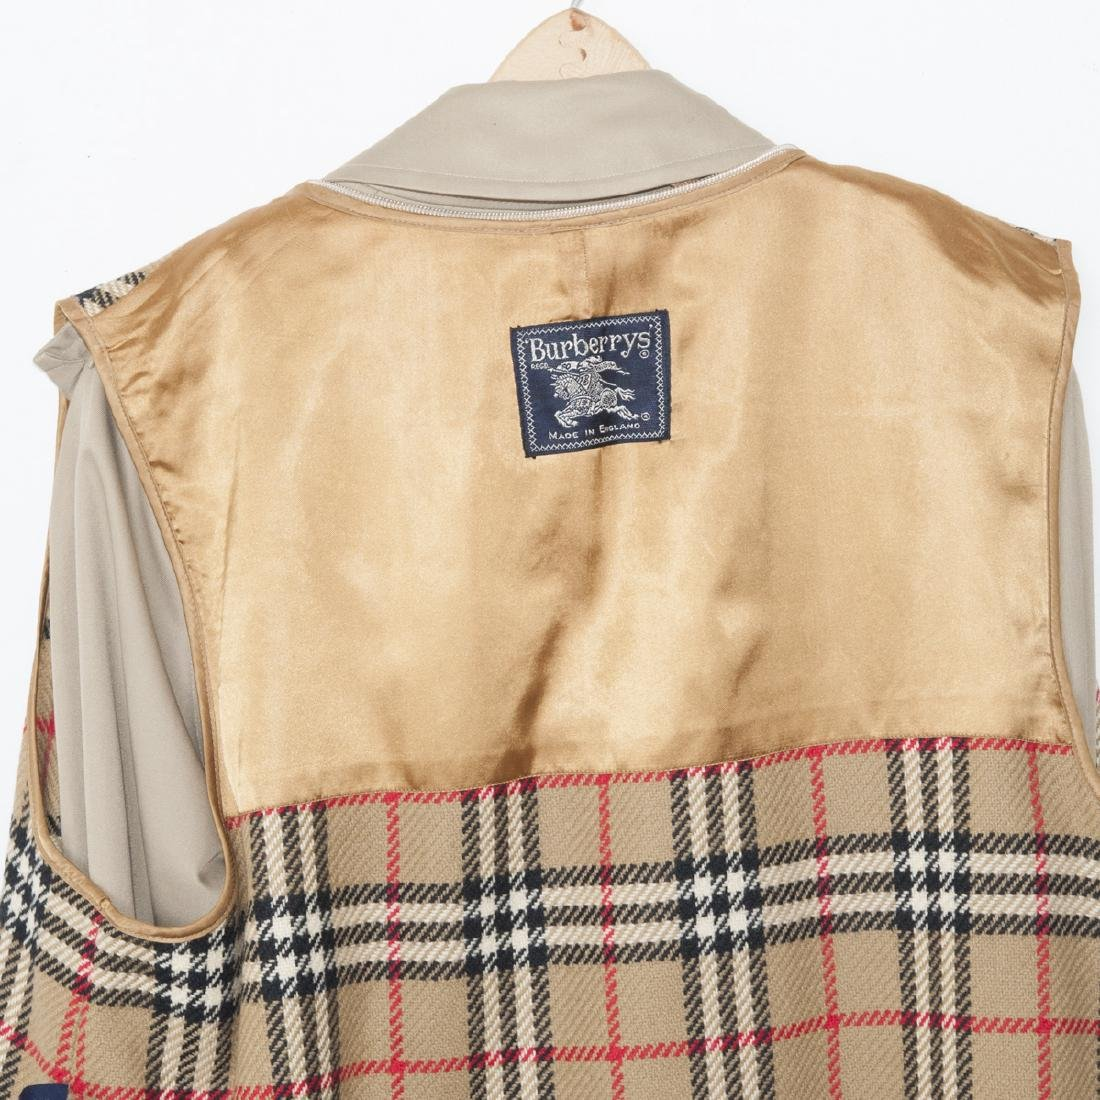 Vintage Burberry's of London Trench Coat - 4